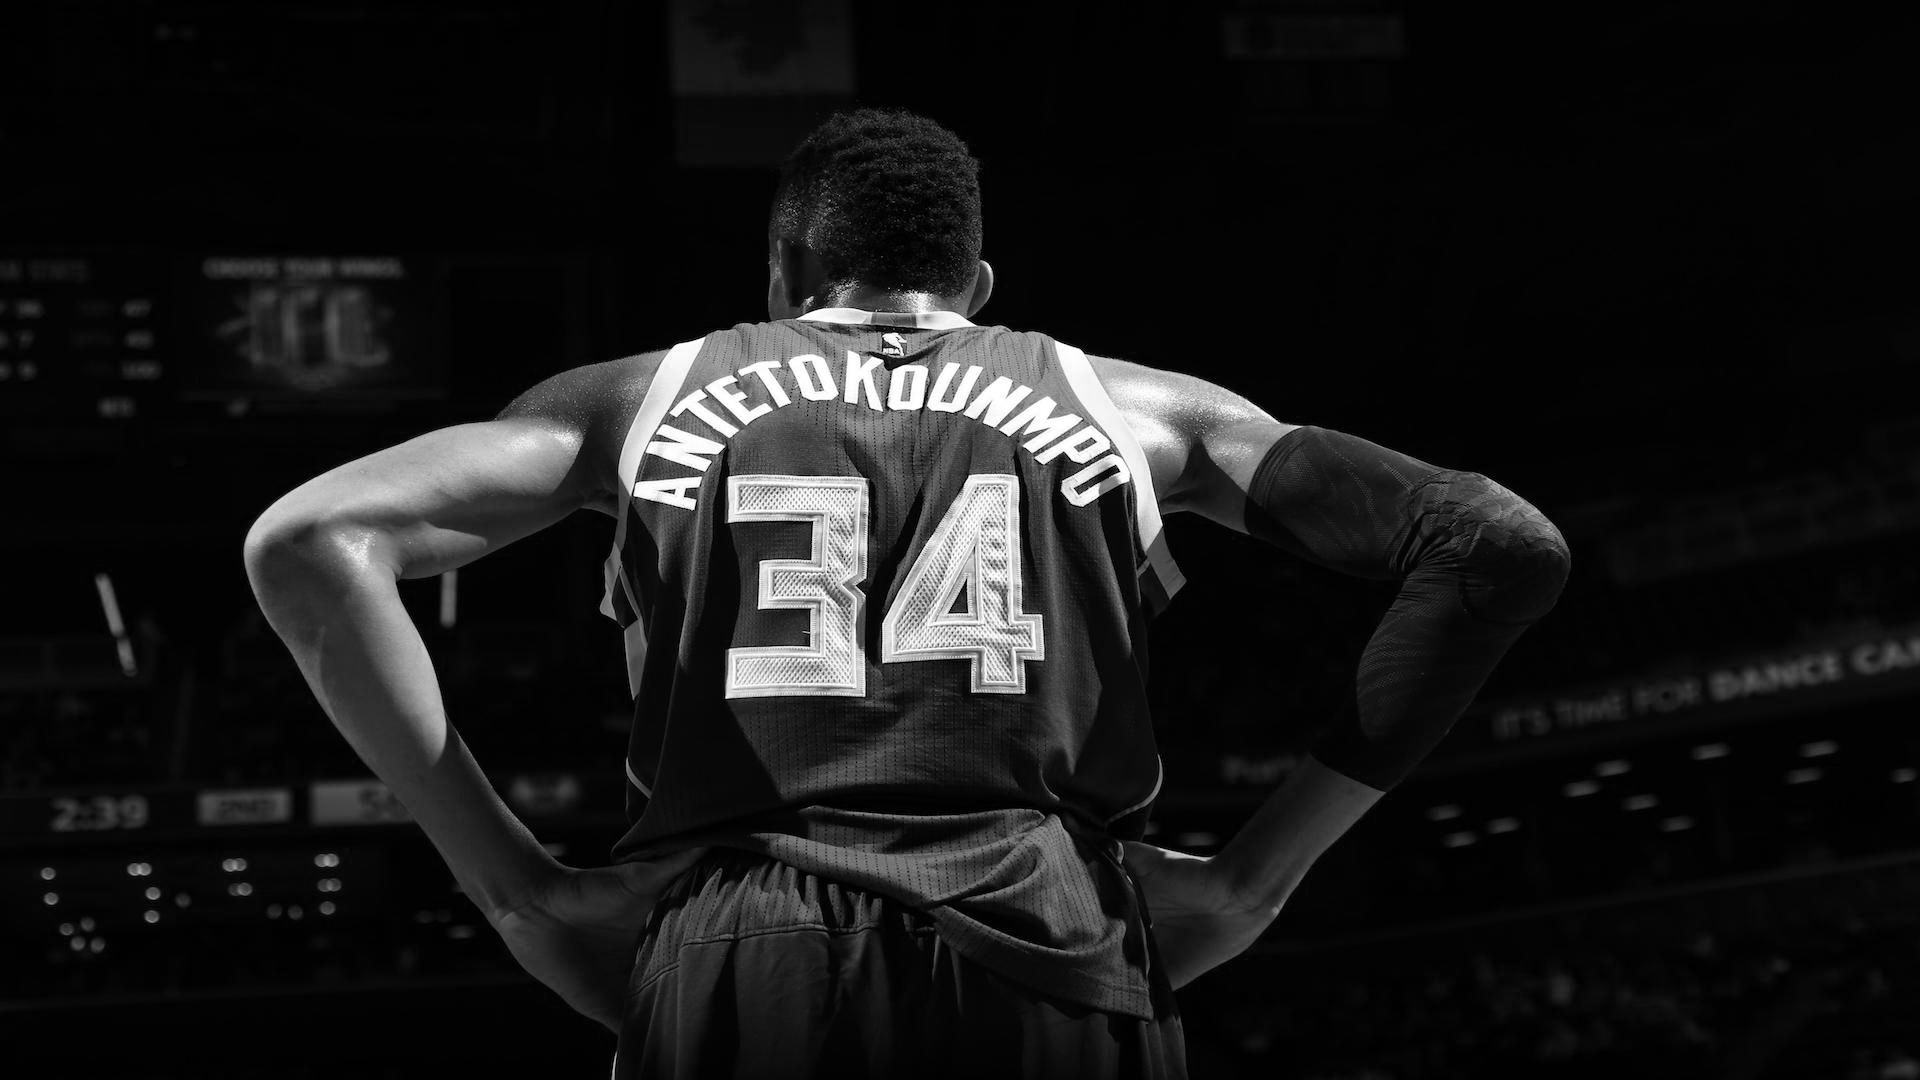 Giannis Antetokounmpo. The Greek Freak. Black, white